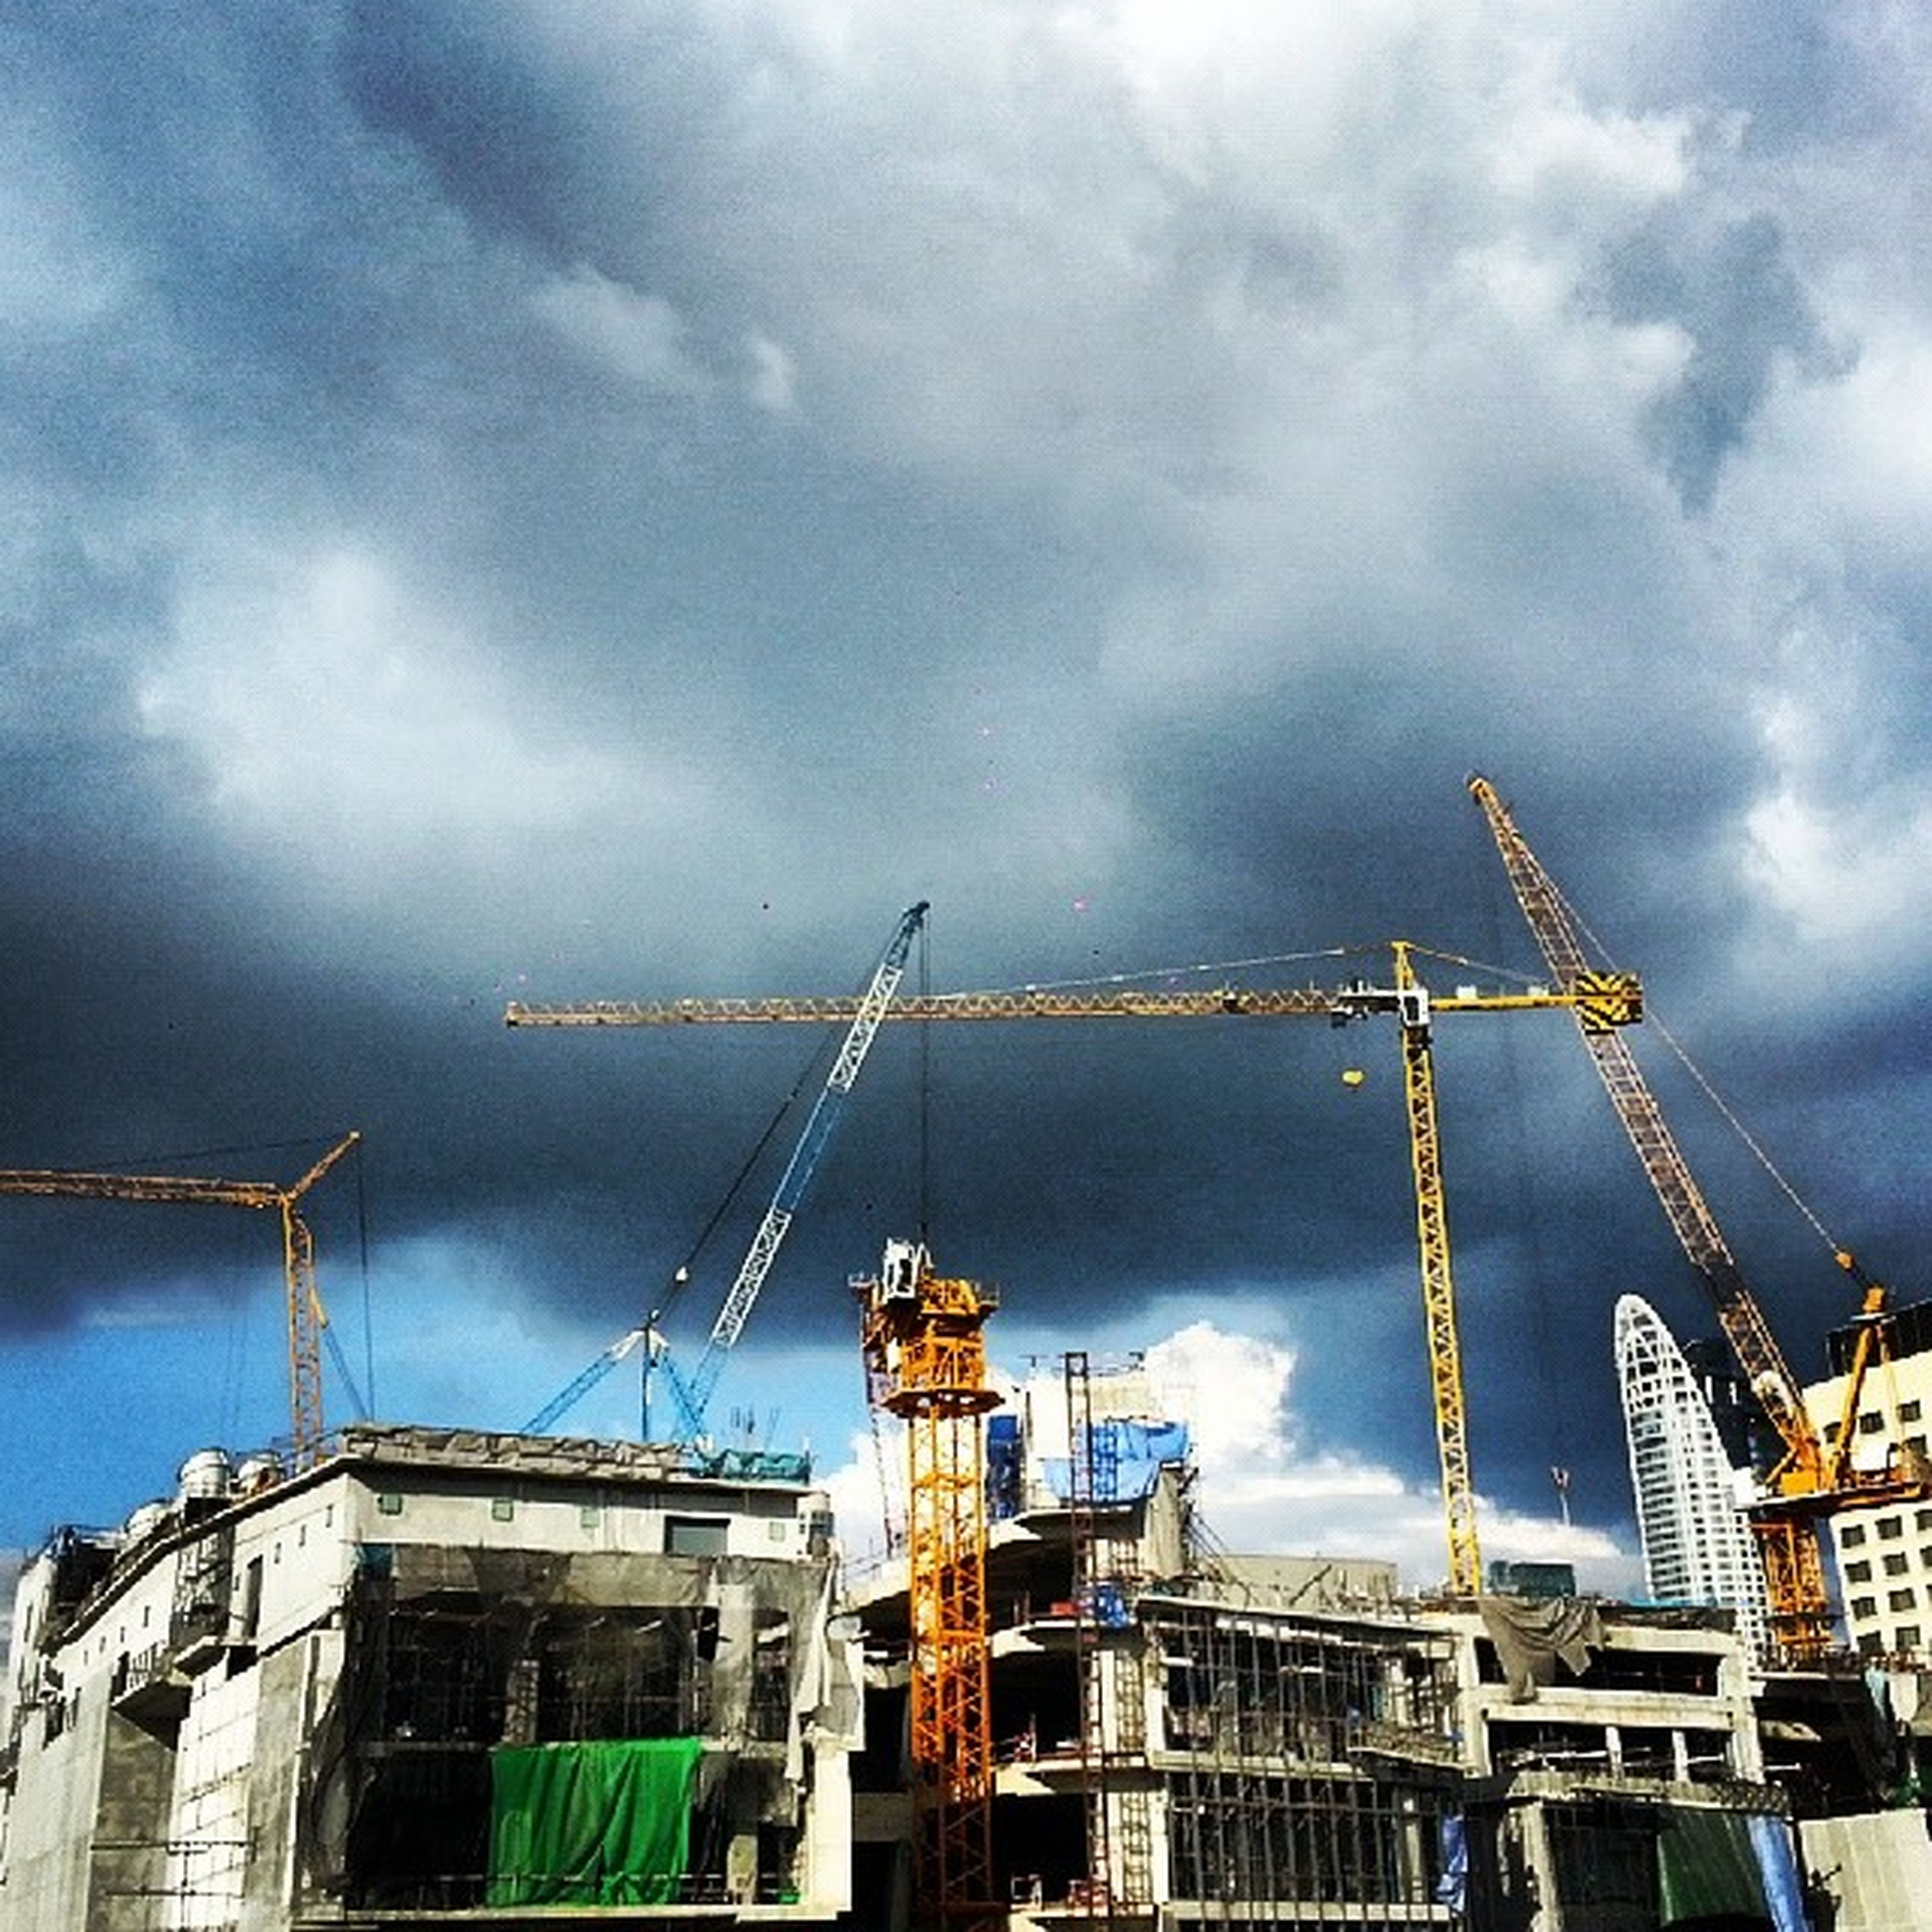 architecture, built structure, building exterior, sky, cloud - sky, low angle view, cloudy, construction site, crane - construction machinery, development, industry, weather, construction, cloud, factory, incomplete, day, crane, overcast, building